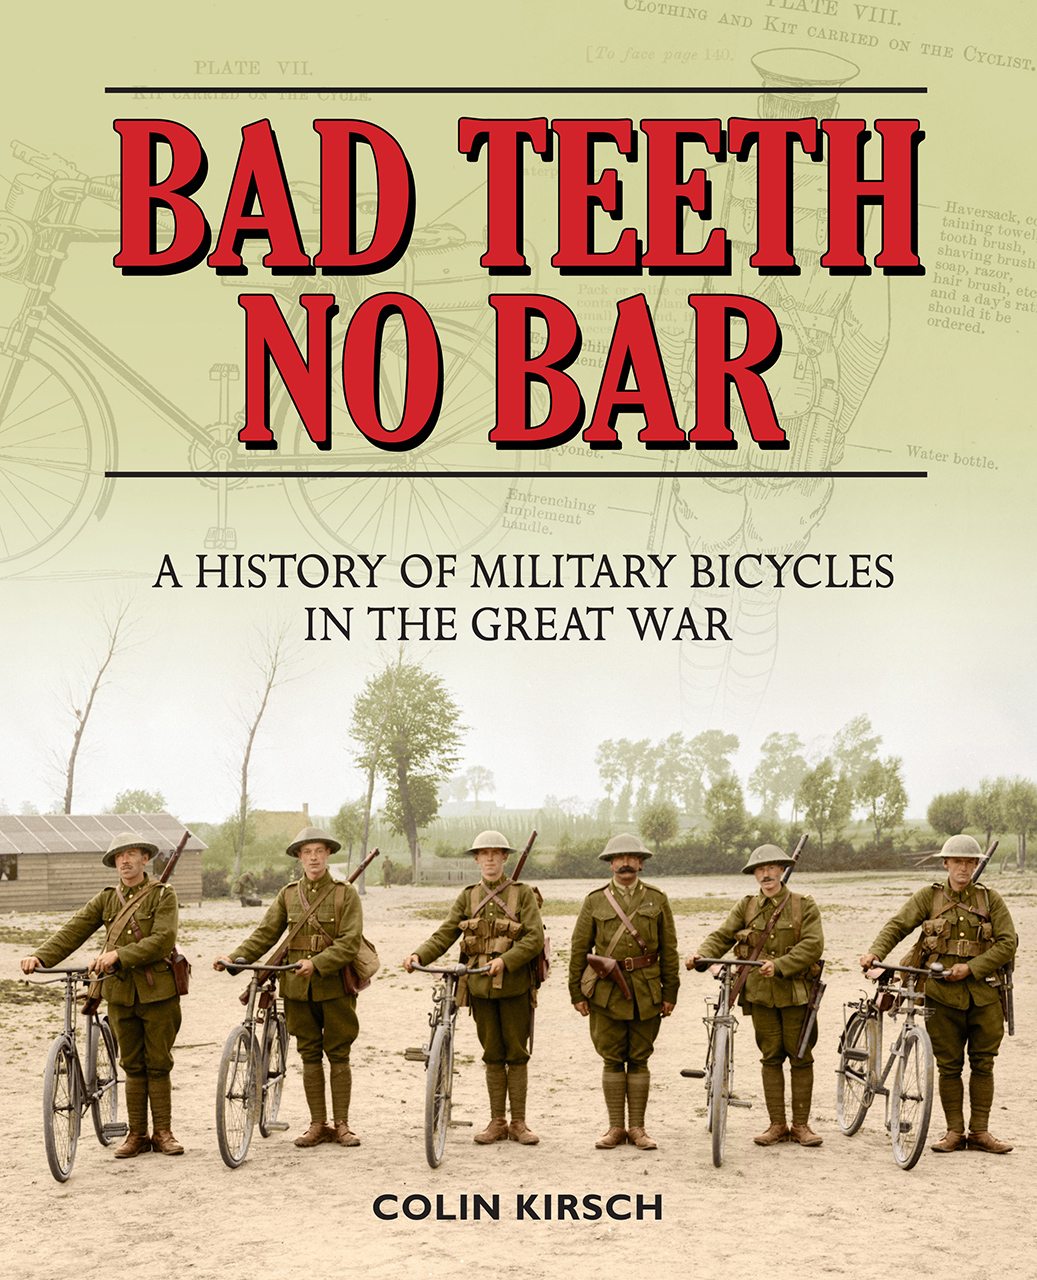 Bad Teeth No Bar: A History of Military Bicycles in the Great War